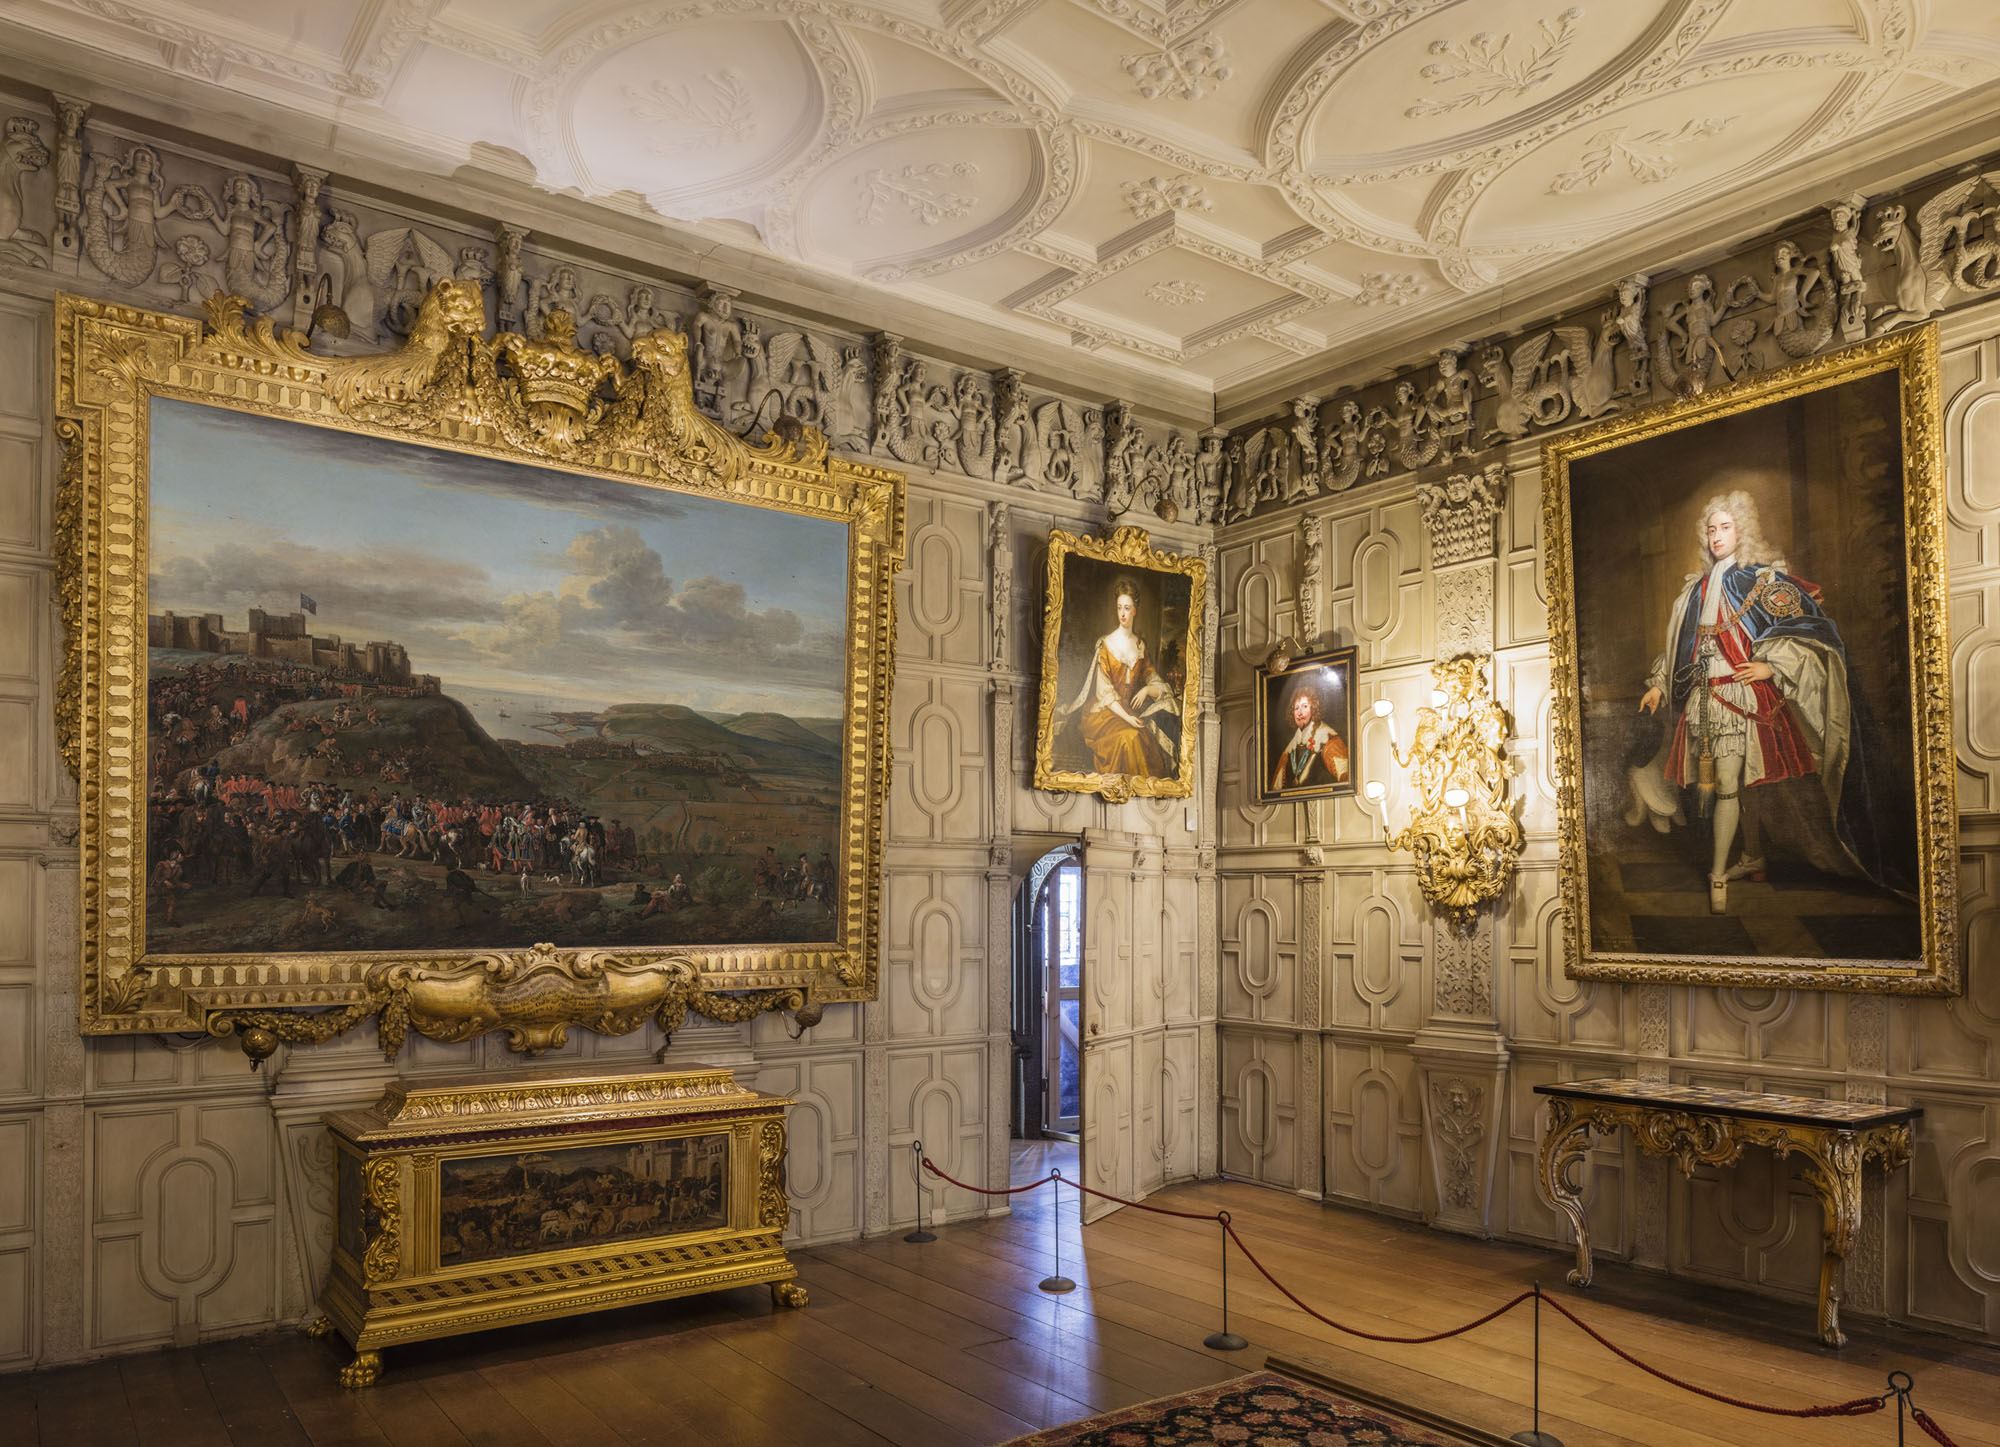 a photo of a panelled room with guilt framed paintings